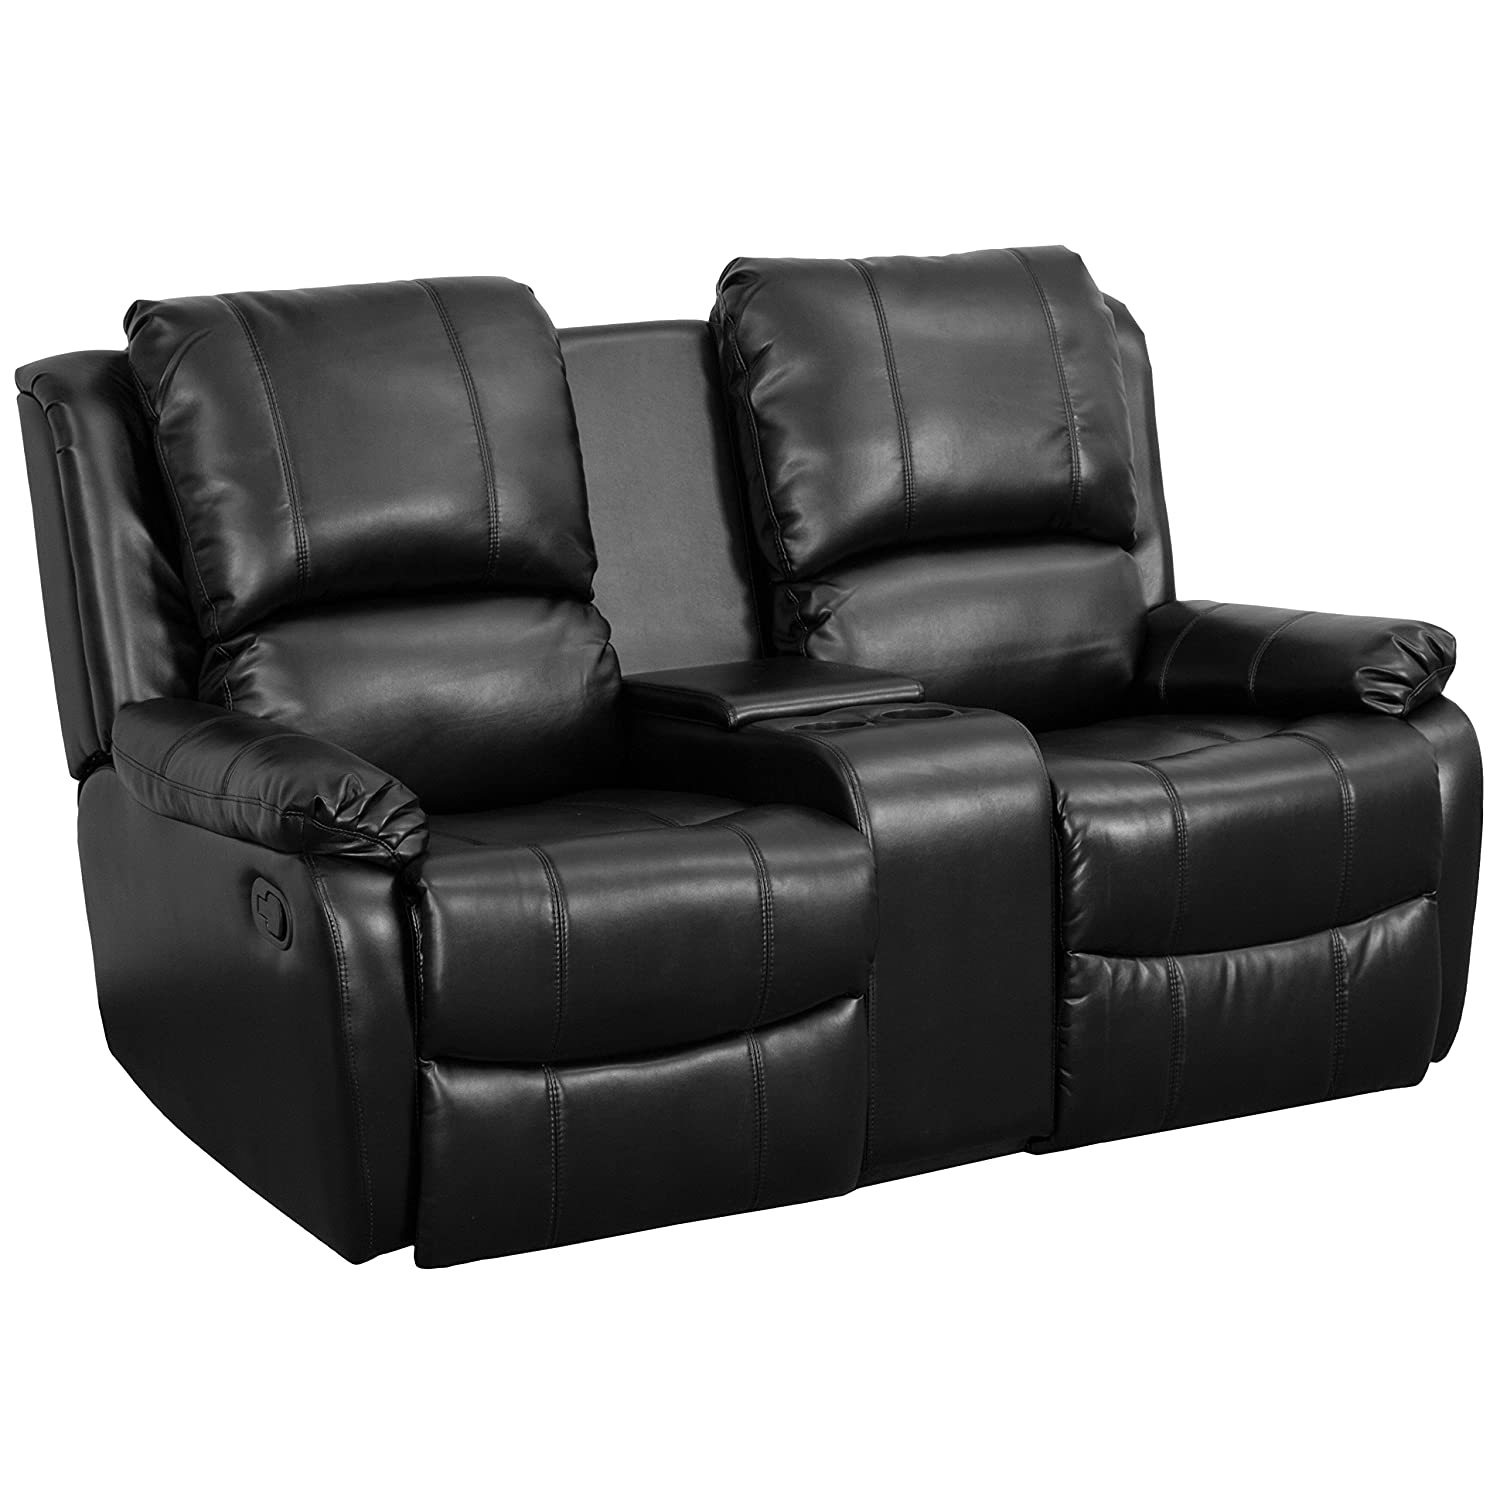 Amazon.com Flash Furniture Allure Series 2-Seat Reclining Pillow Back Black Leather Theater Seating Unit with Cup Holders Kitchen u0026 Dining  sc 1 st  Amazon.com : 2 seater recliner leather sofa - islam-shia.org